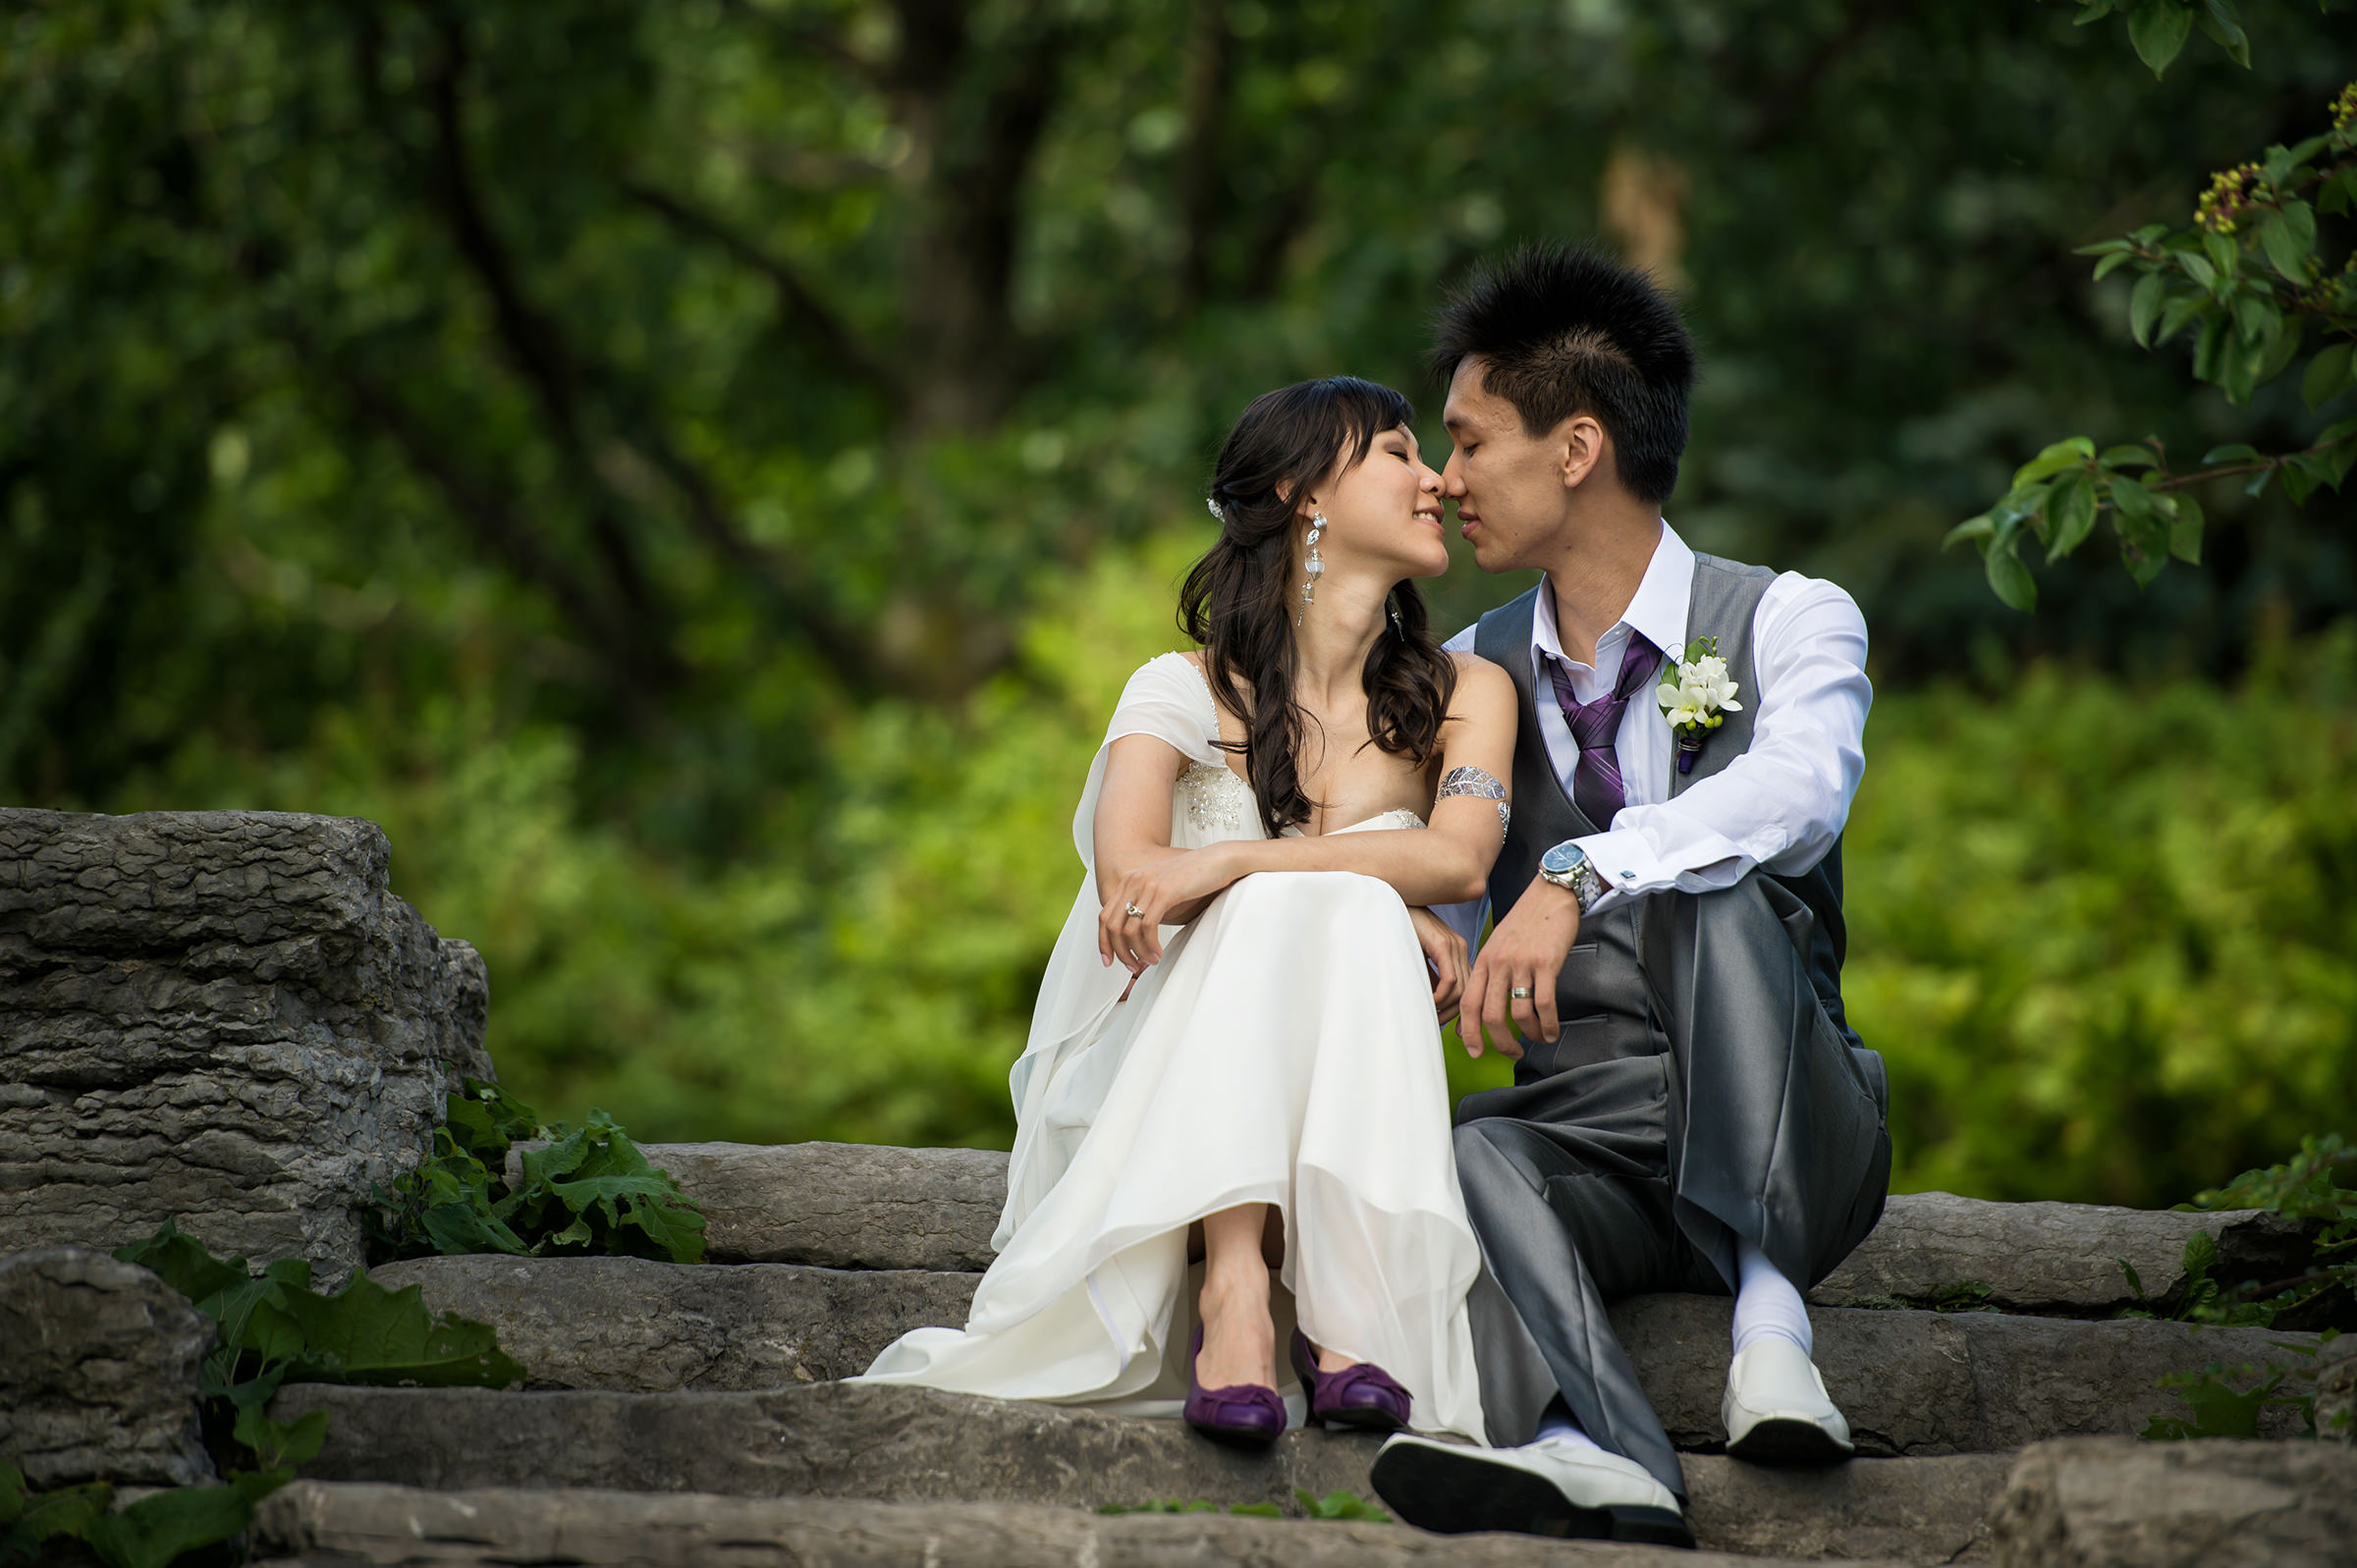 Kissing couple on stone steps - photo by David & Sherry Photography